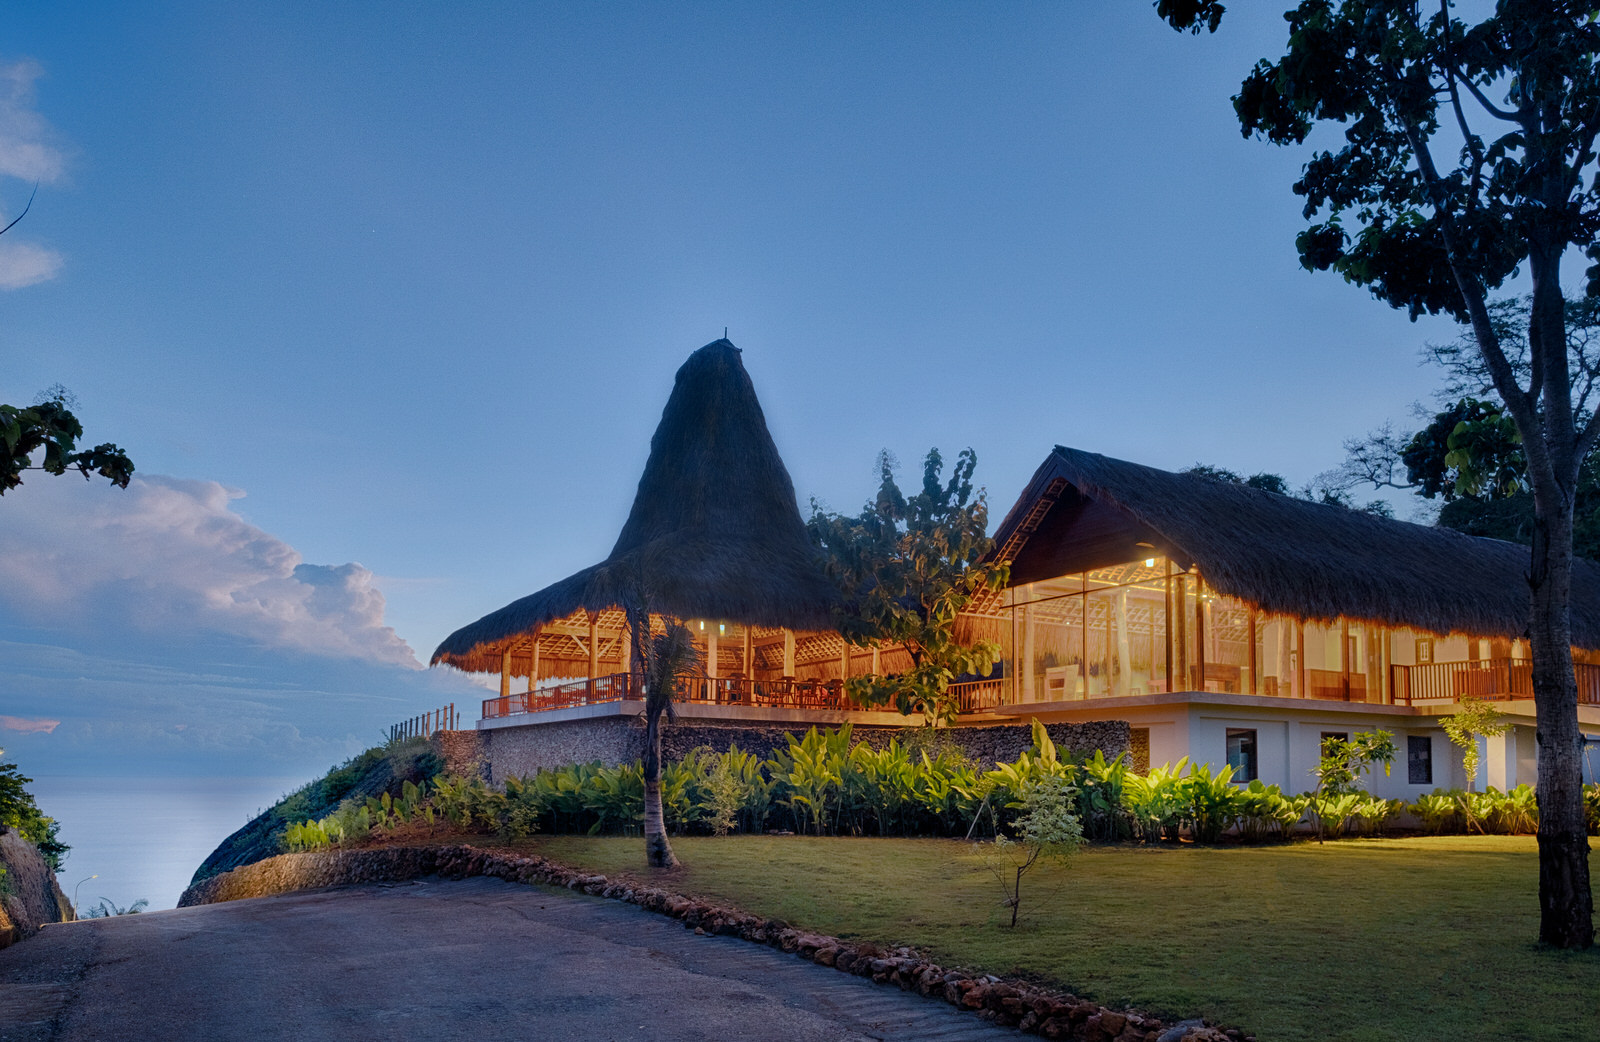 Lelewatu Sumba - Le Humba Restaurant (Not Available)